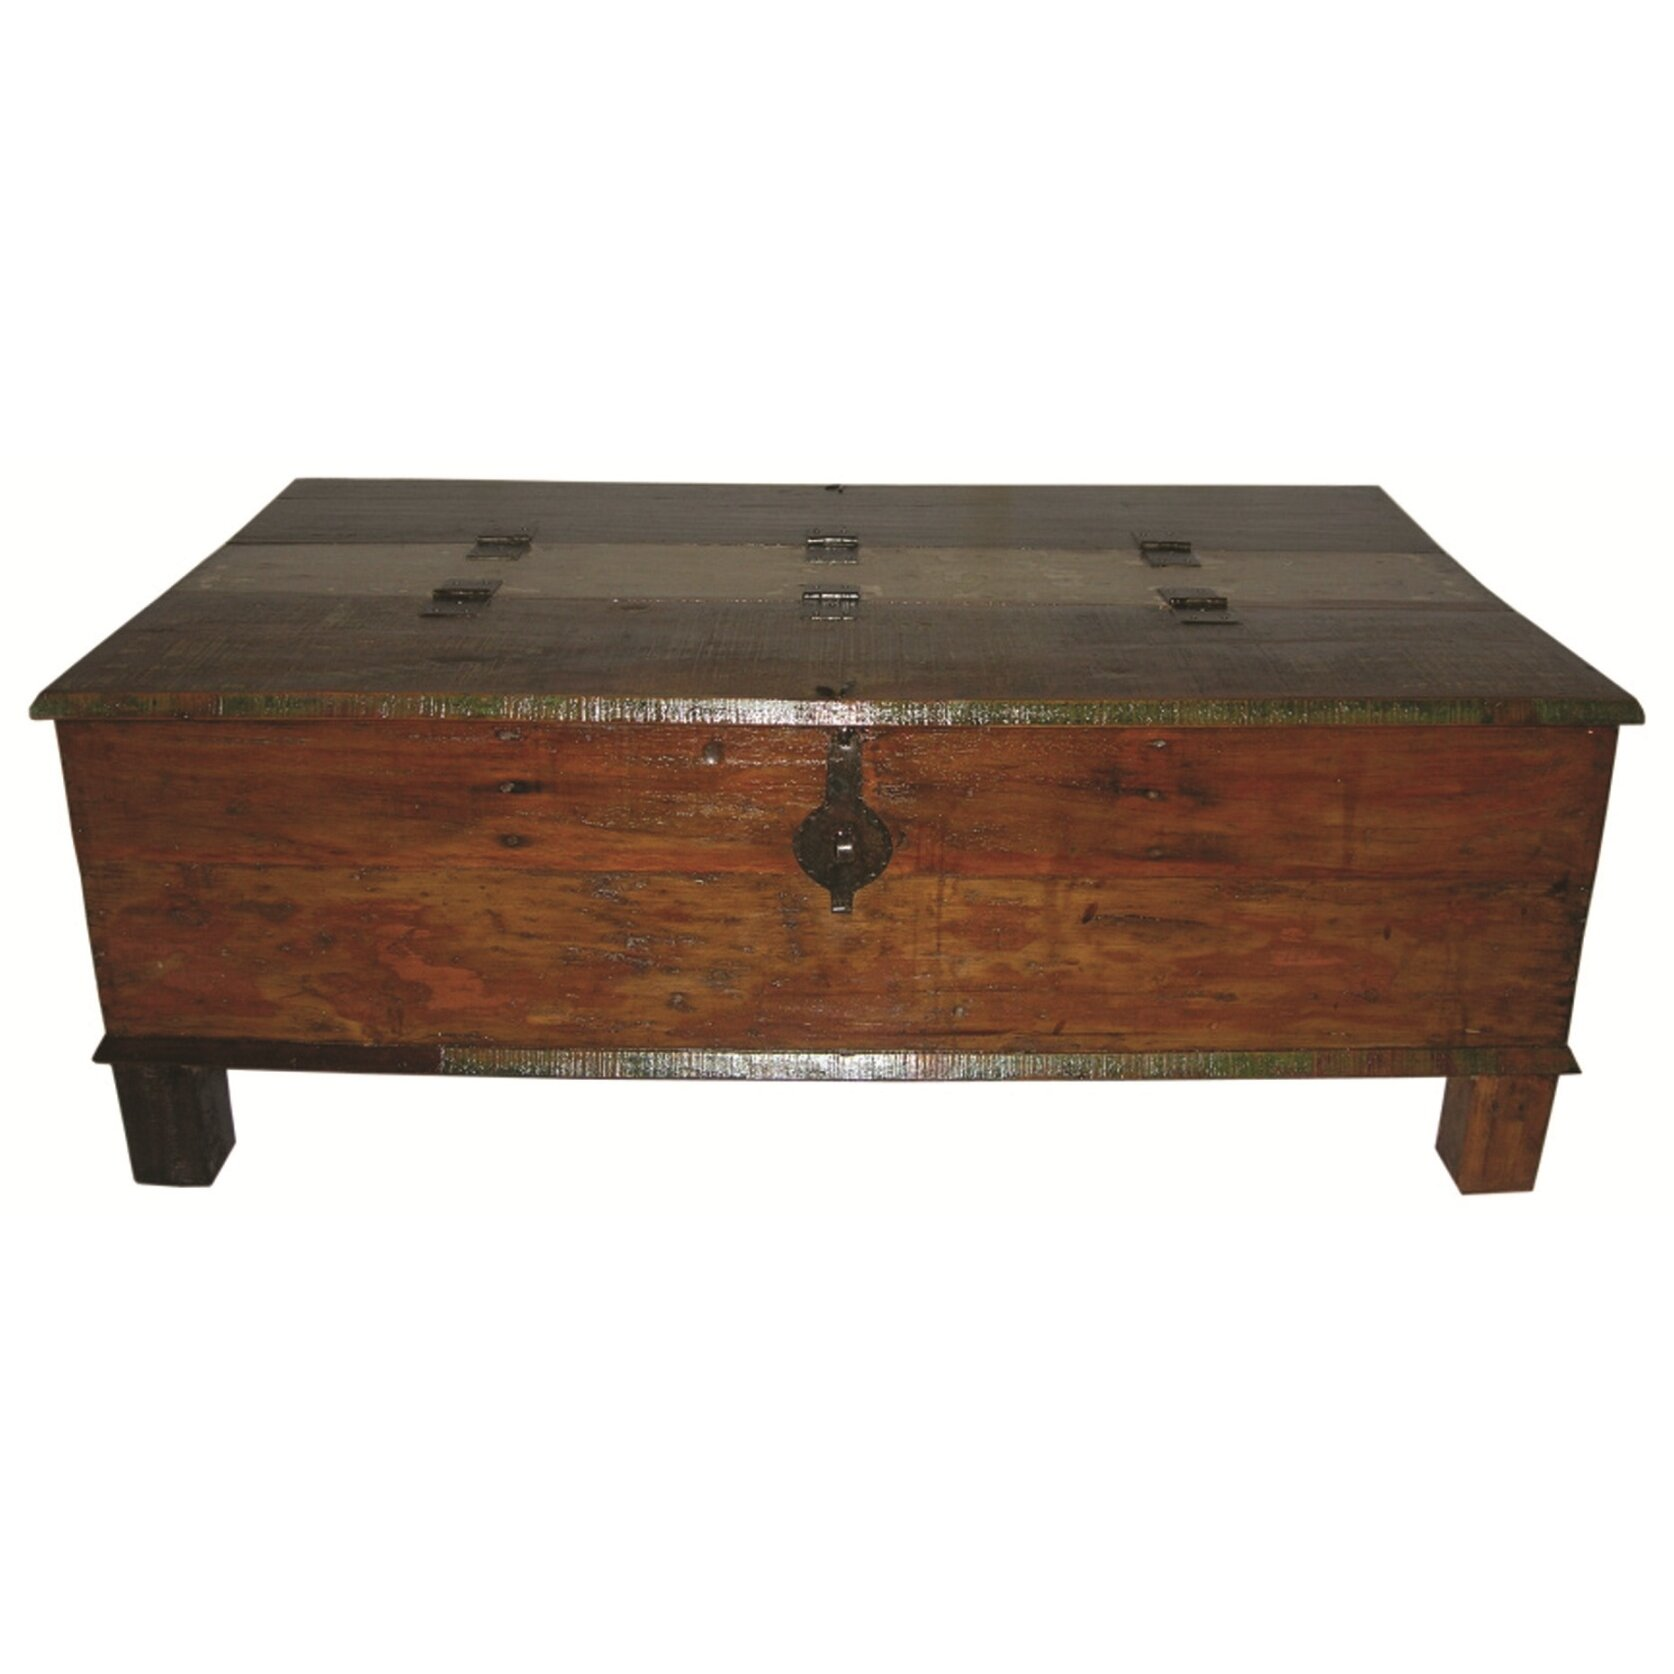 Moti furniture box trunk coffee table reviews wayfair Trunks coffee tables